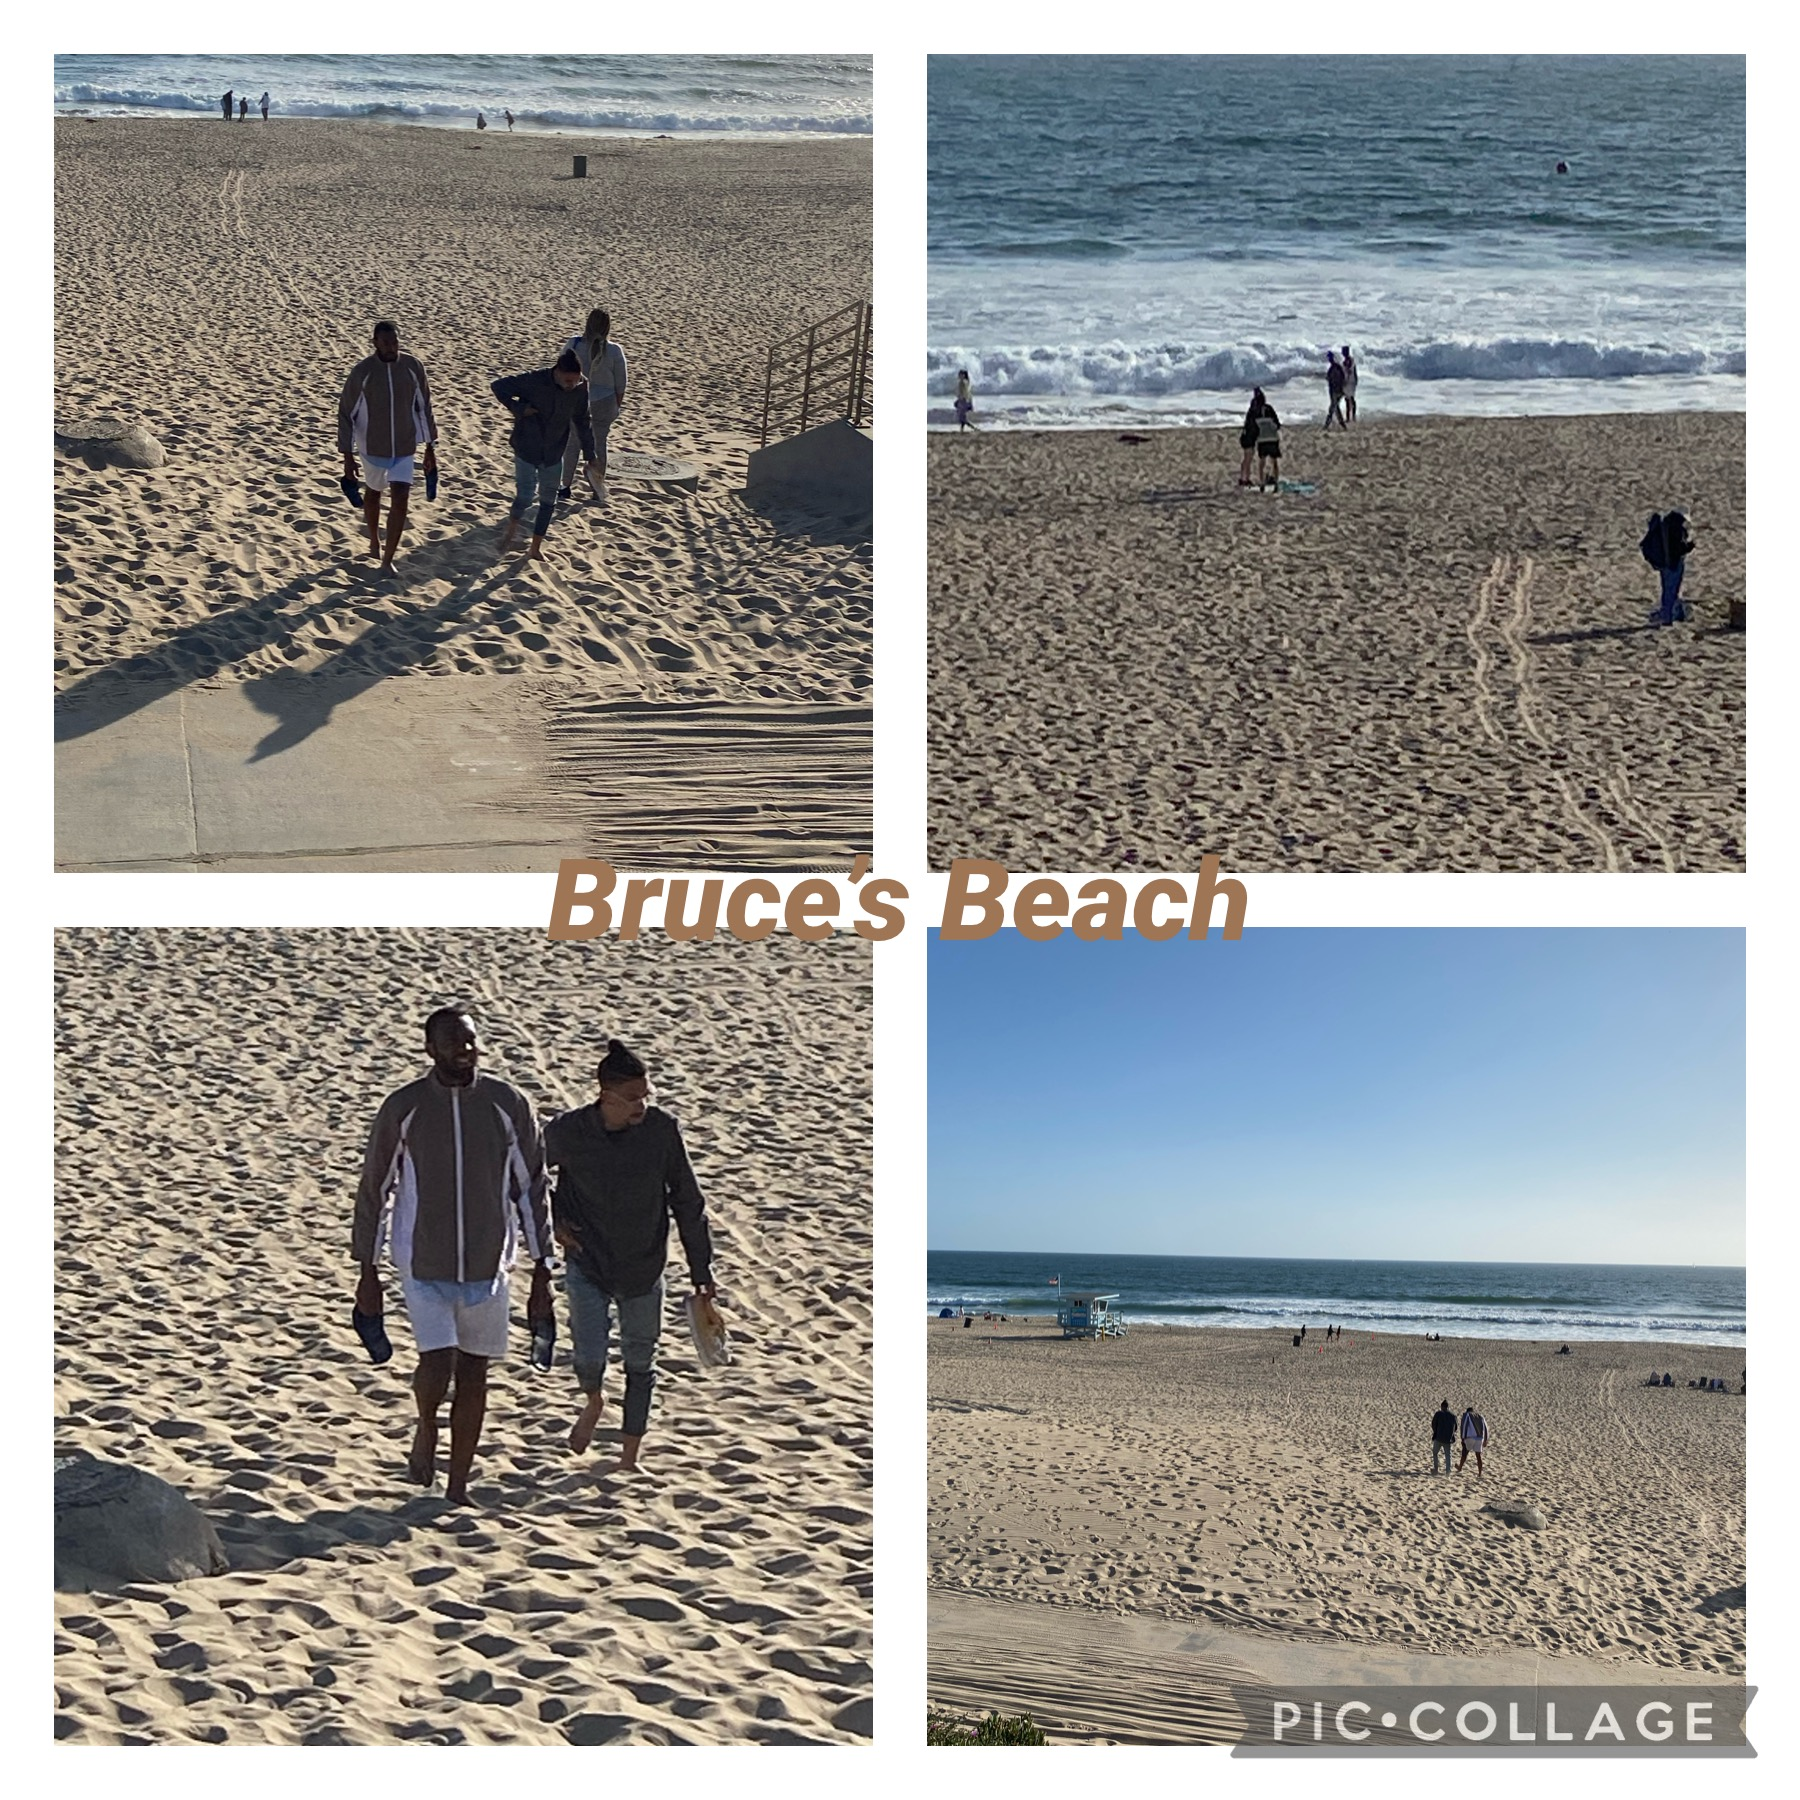 Bruce's Beach was a beach resort in the city of Manhattan Beach, that was owned by and operated for African Americans. It provided the African American community with opportunities unavailable at other beach areas because of racial segregation.